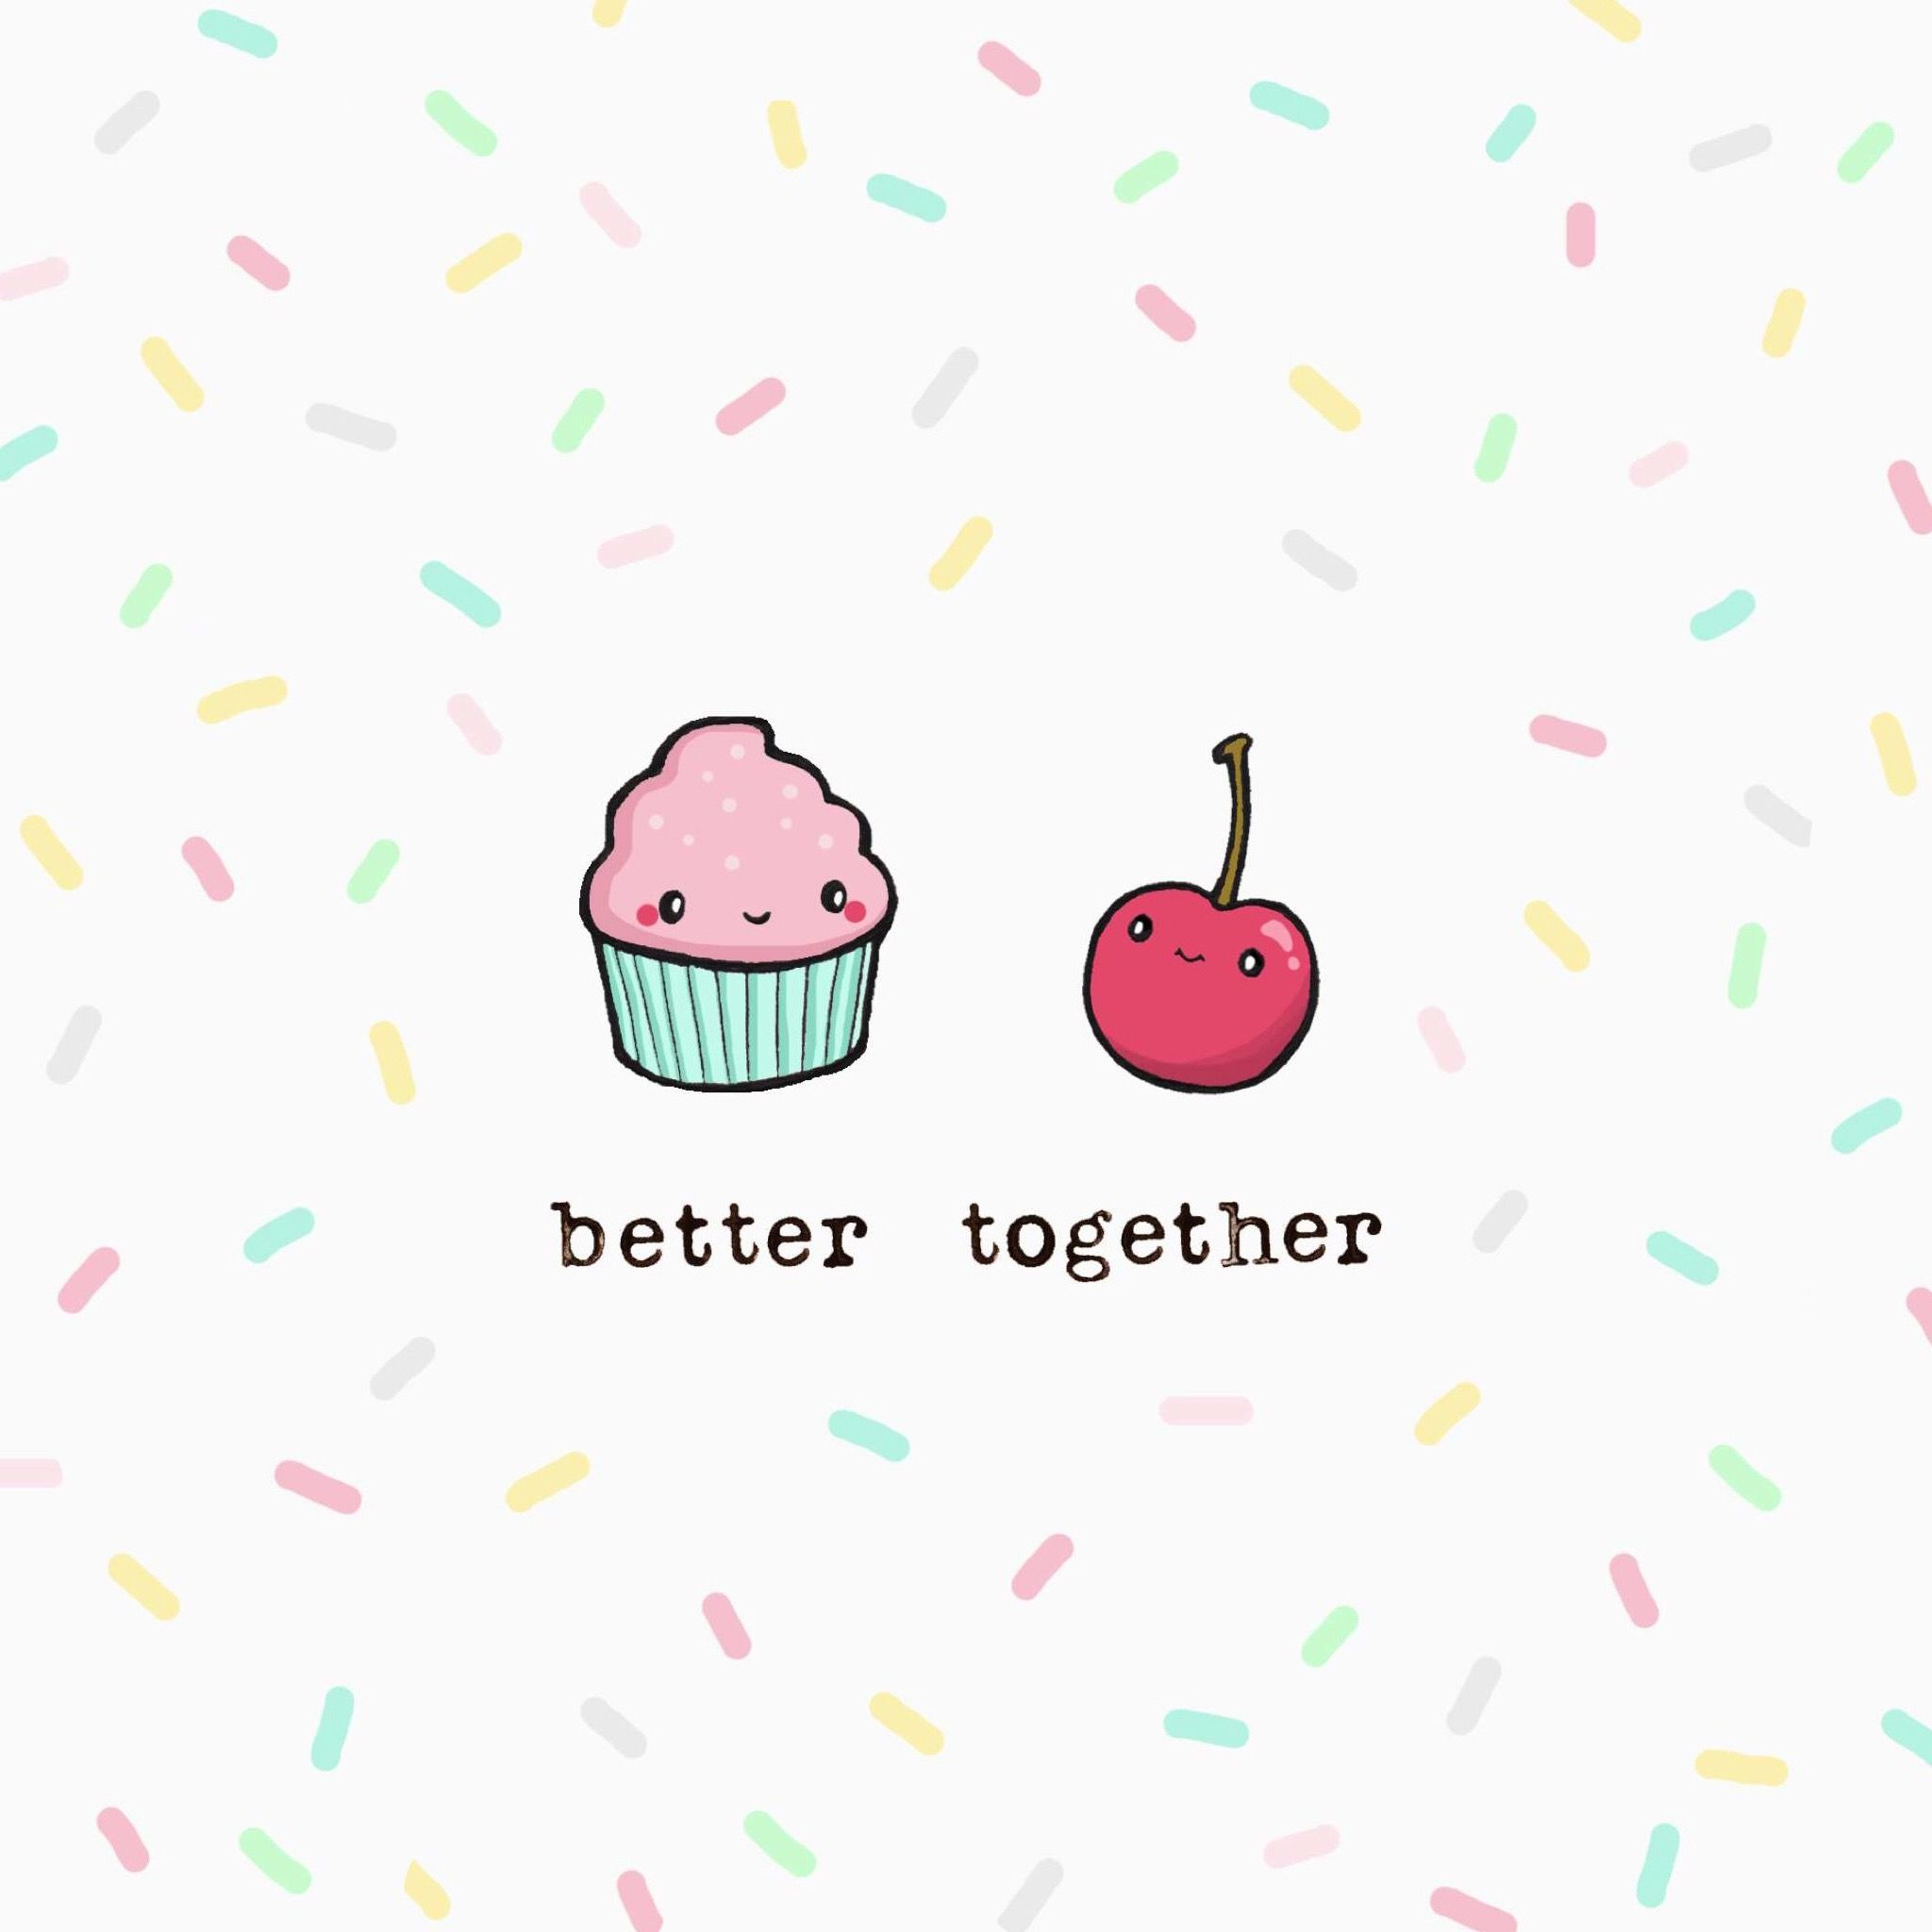 So cute!!!) Wallpaper iphone cute, Better together